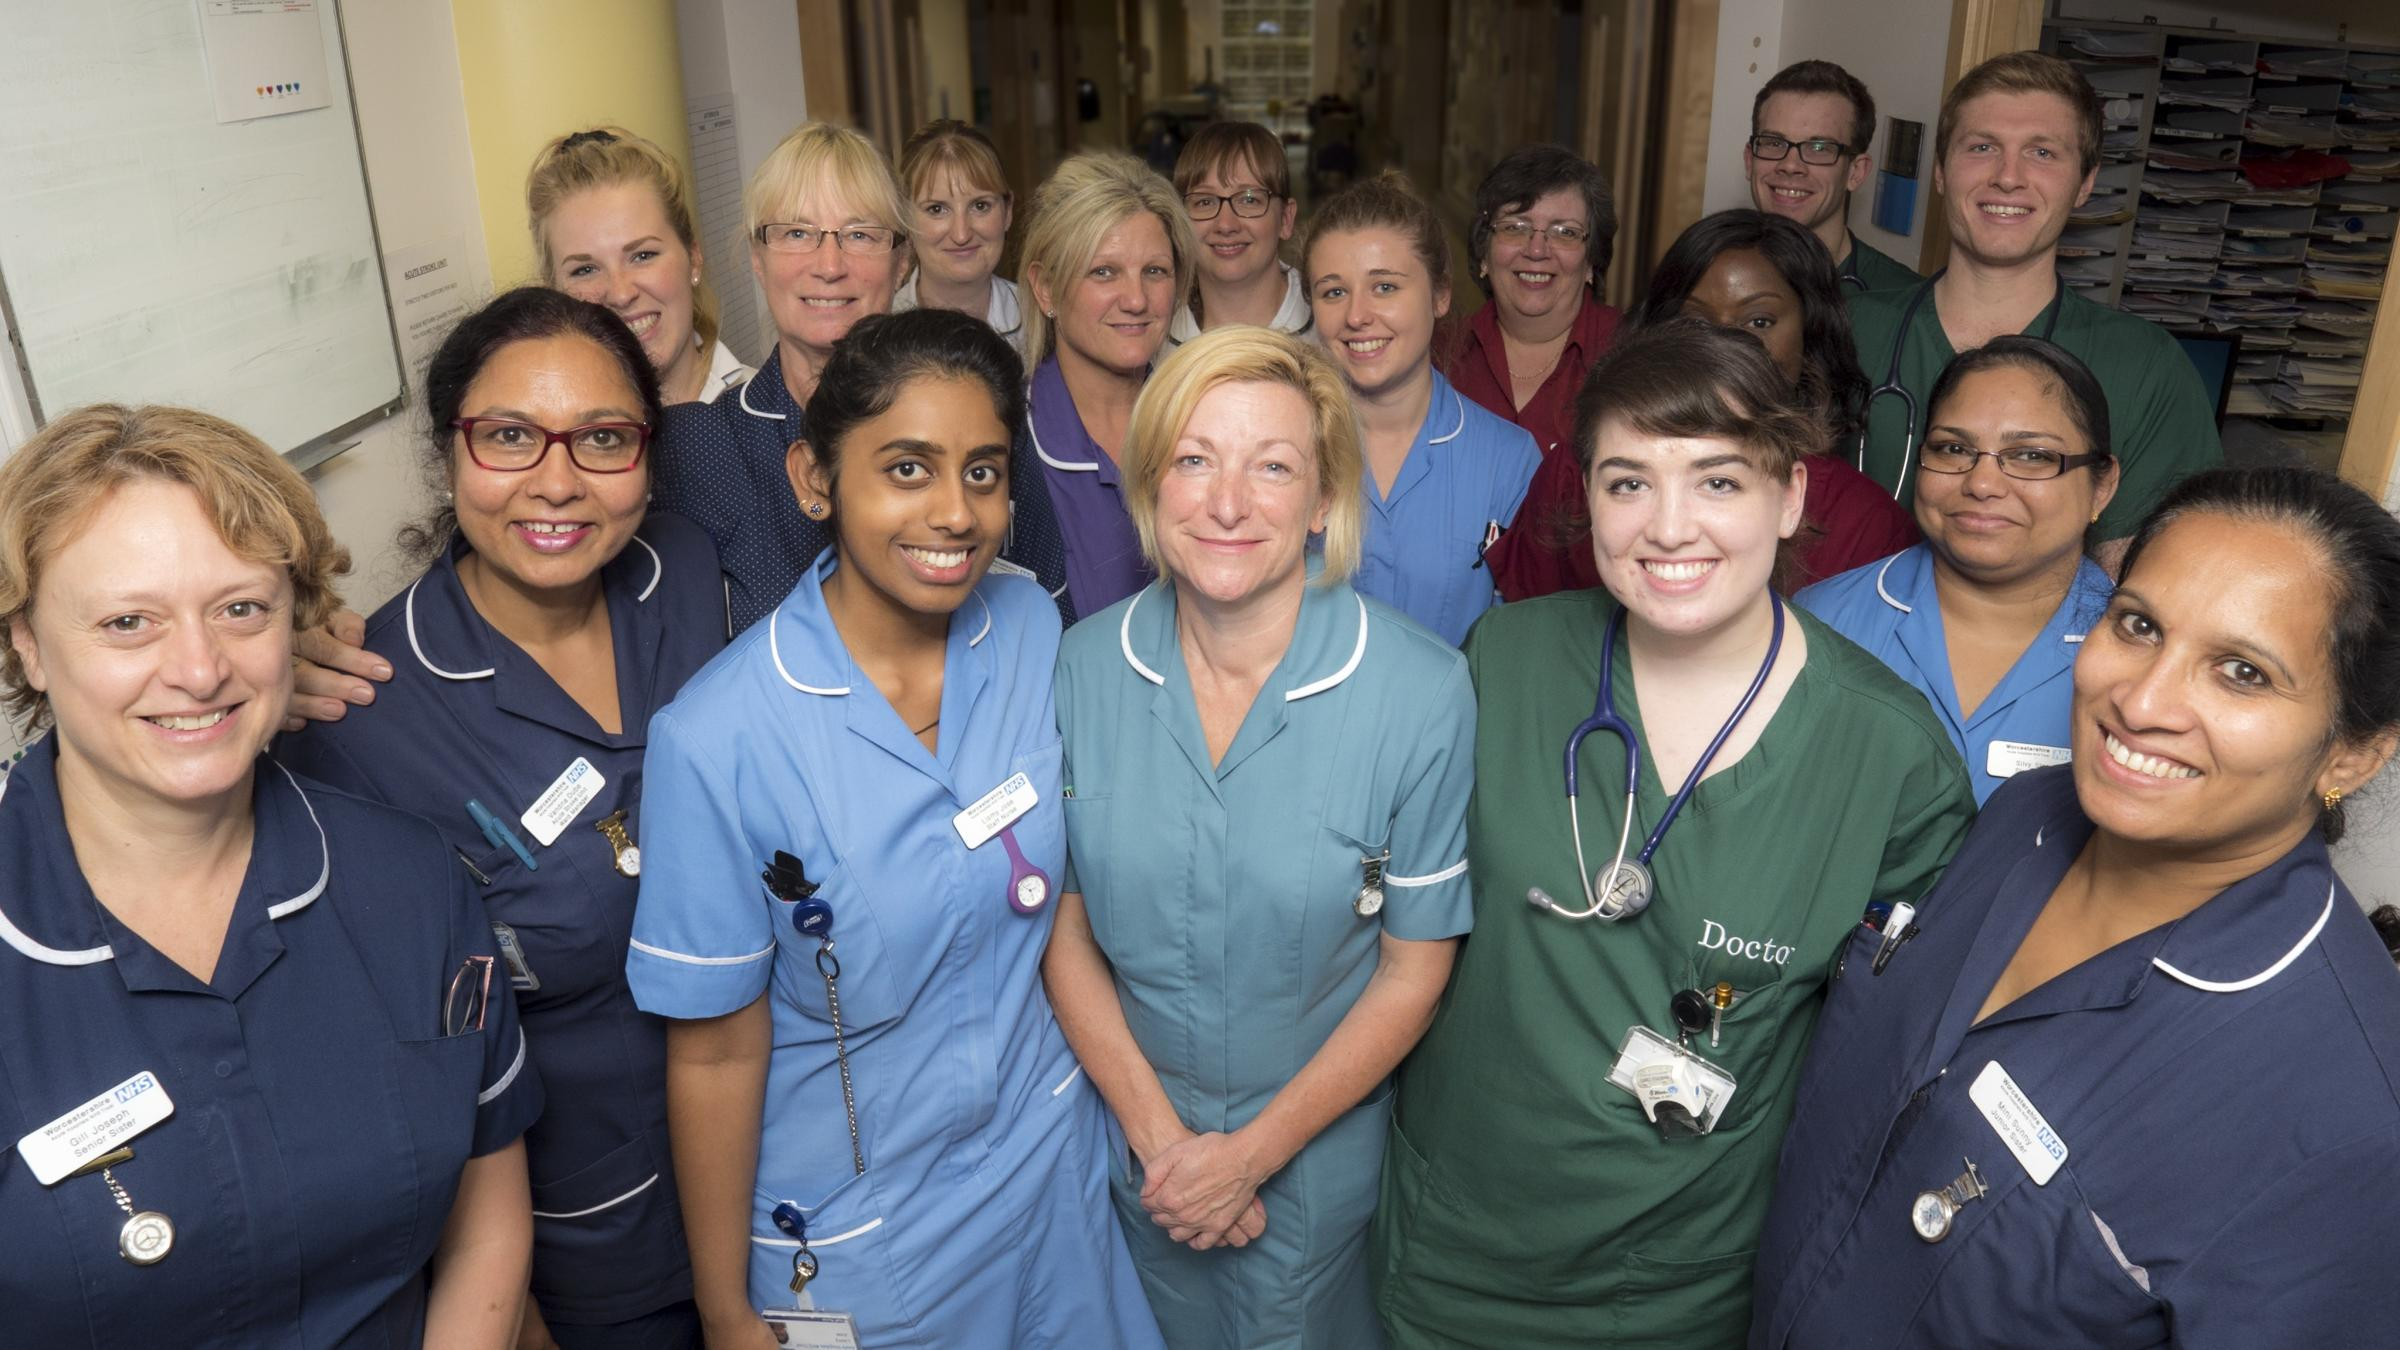 Staff at Worcestershire Acute Hospitals NHS Trust